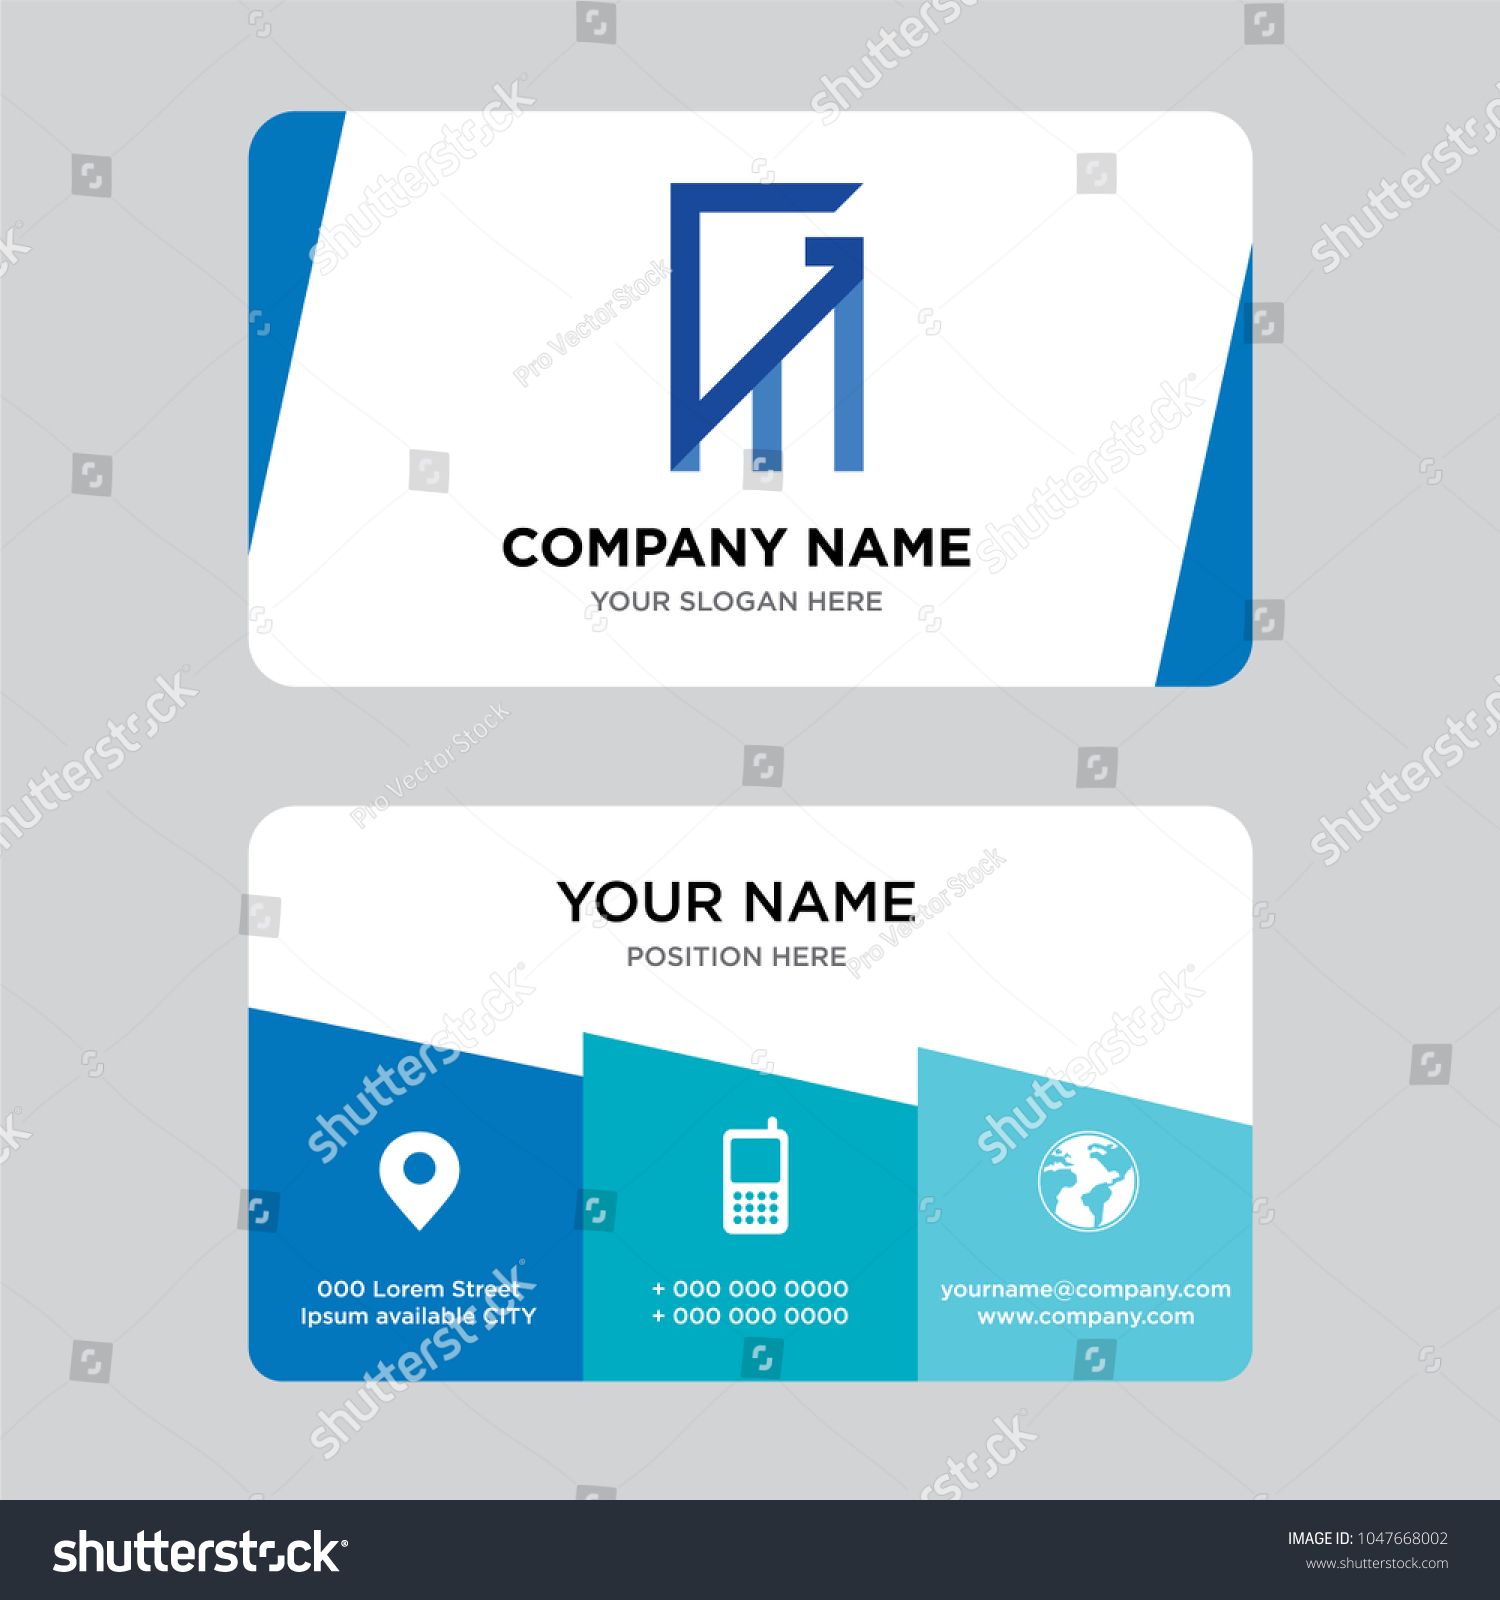 Gmmg Business Card Design Template Visiting Stock Vector ...